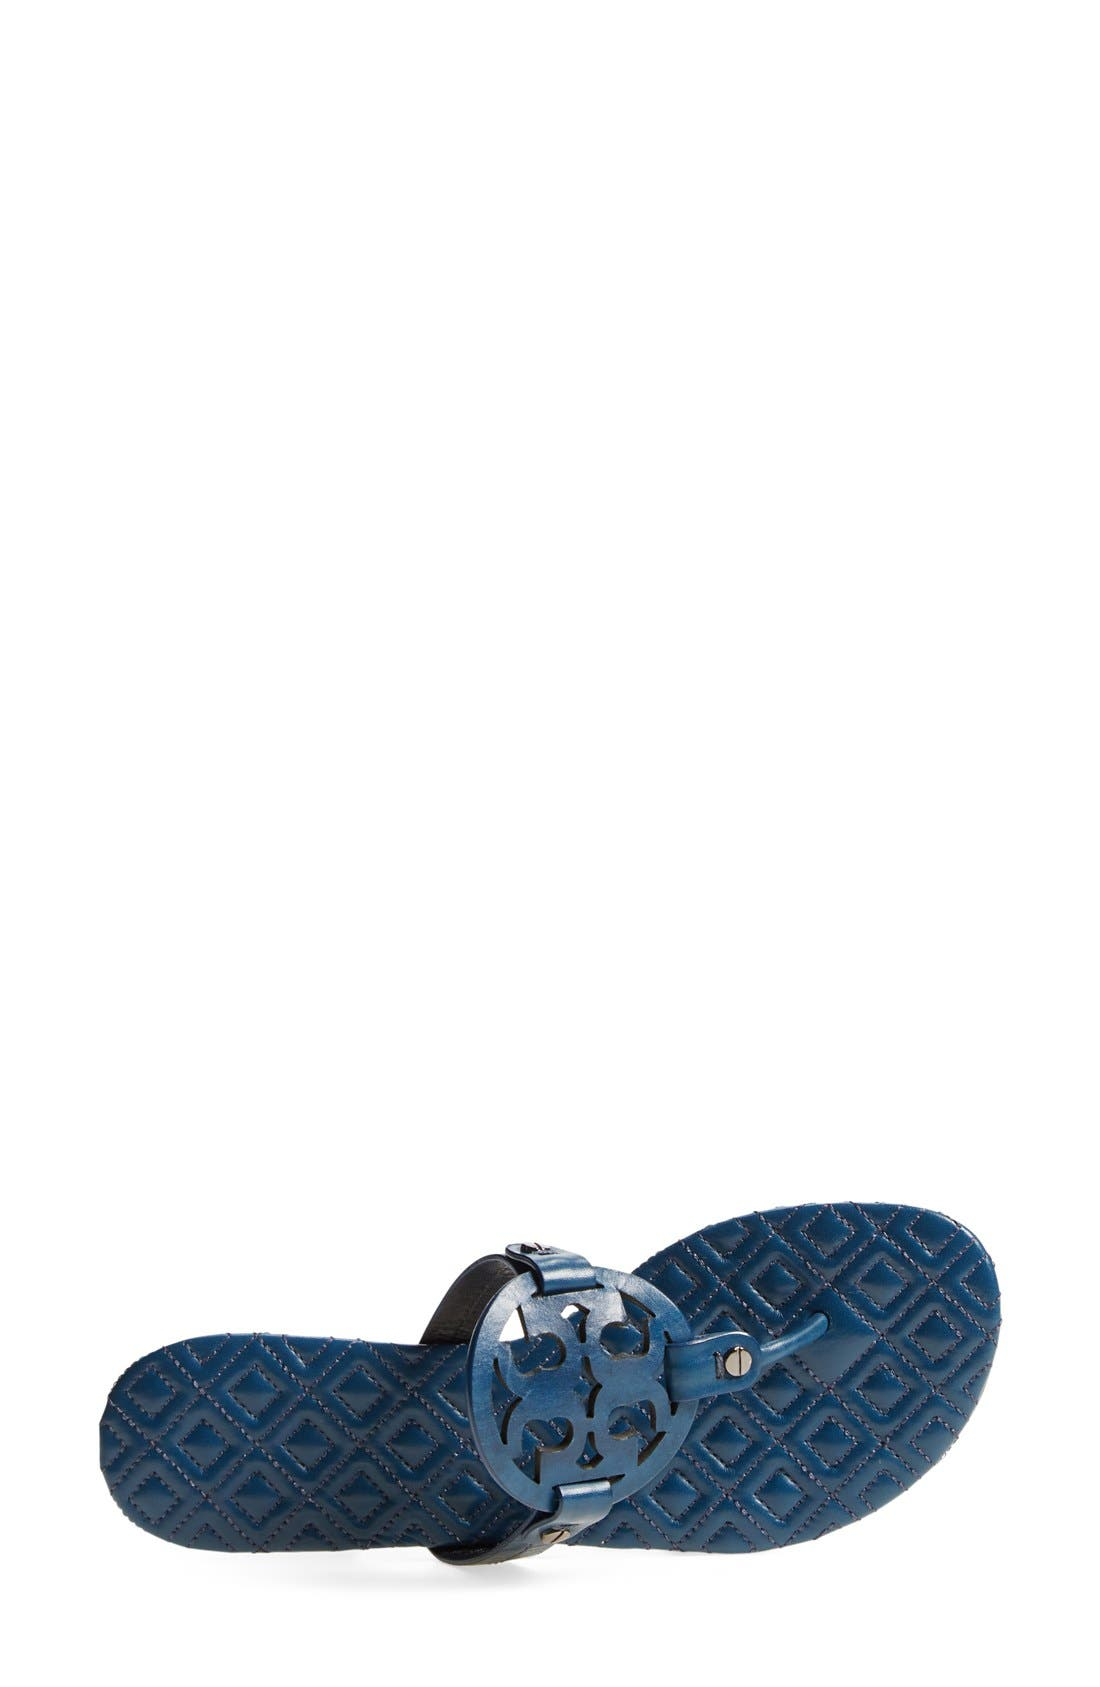 Alternate Image 3  - Tory Burch 'Miller' Quilted Sandal (Women)